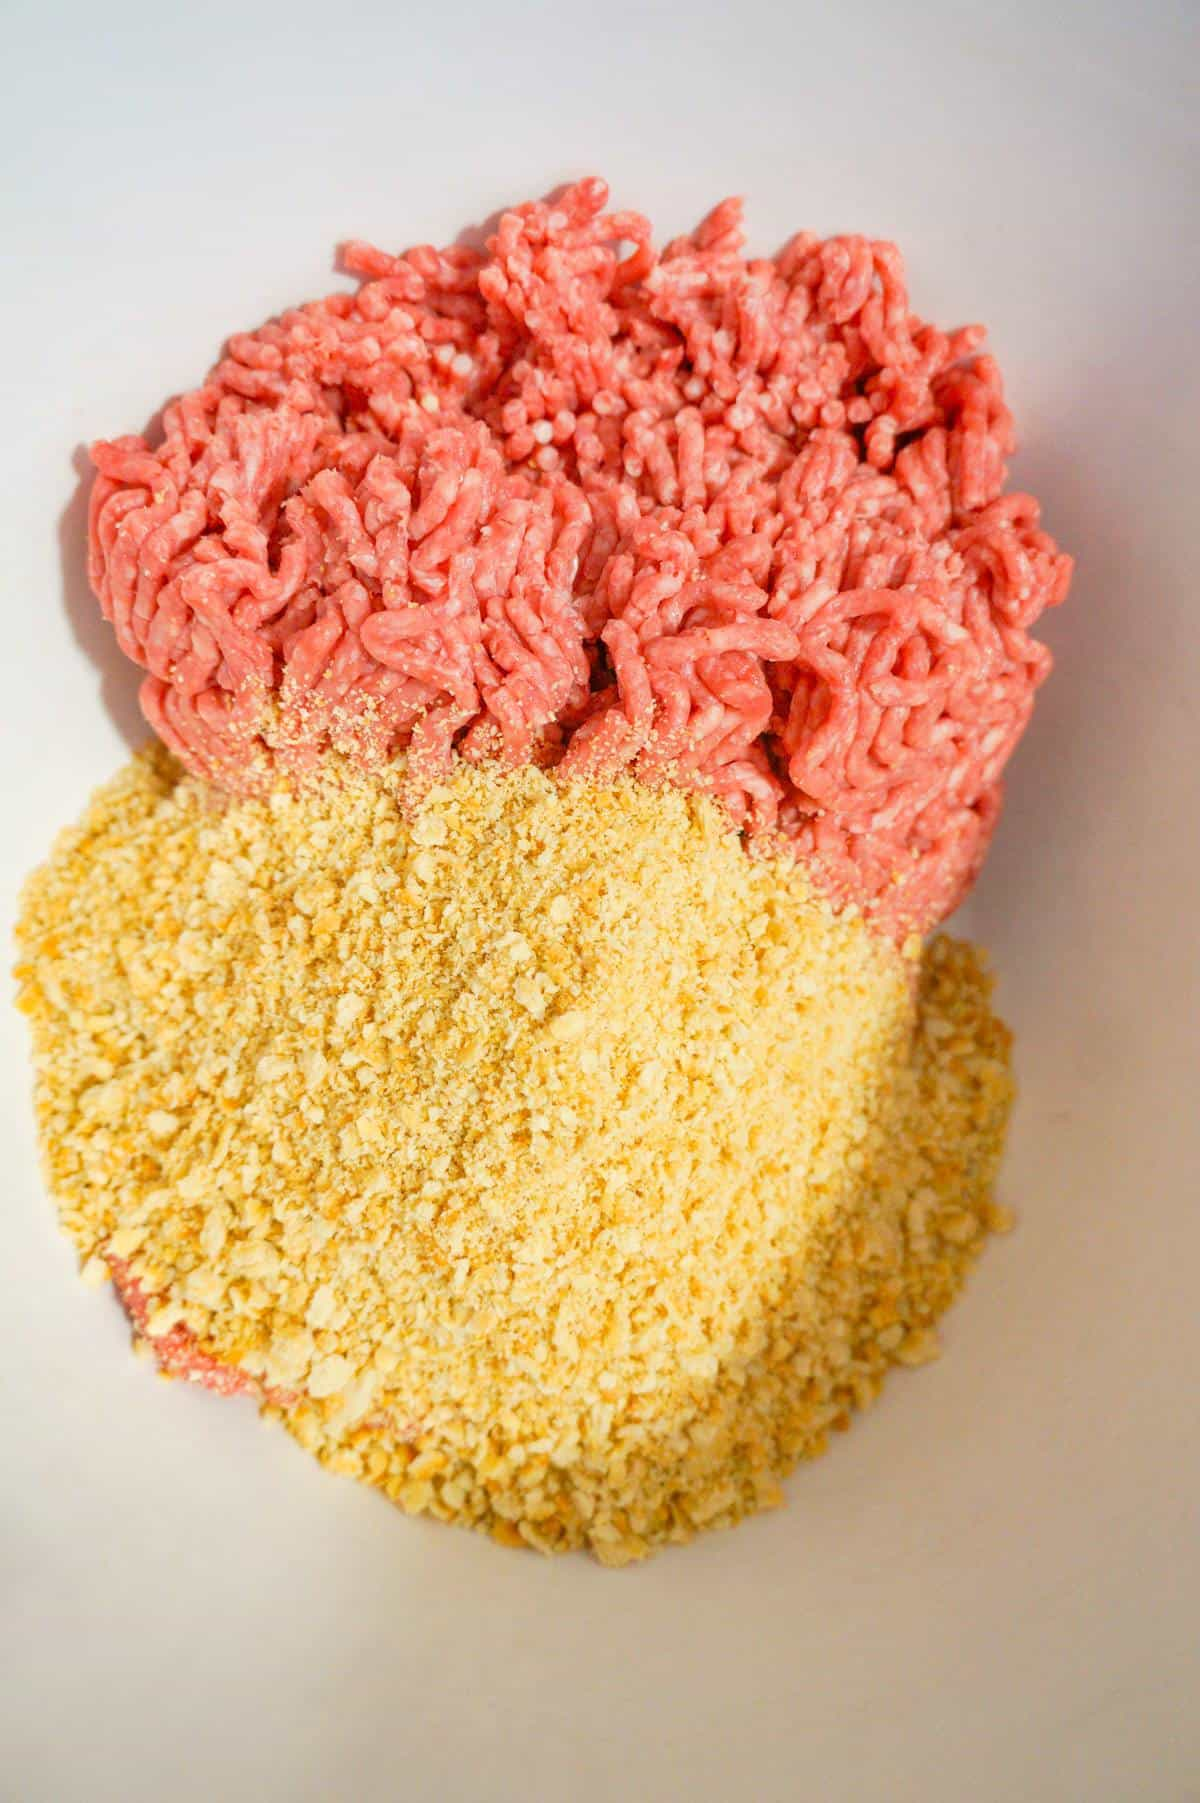 raw ground beef and Ritz cracker crumbs in a mixing bowl